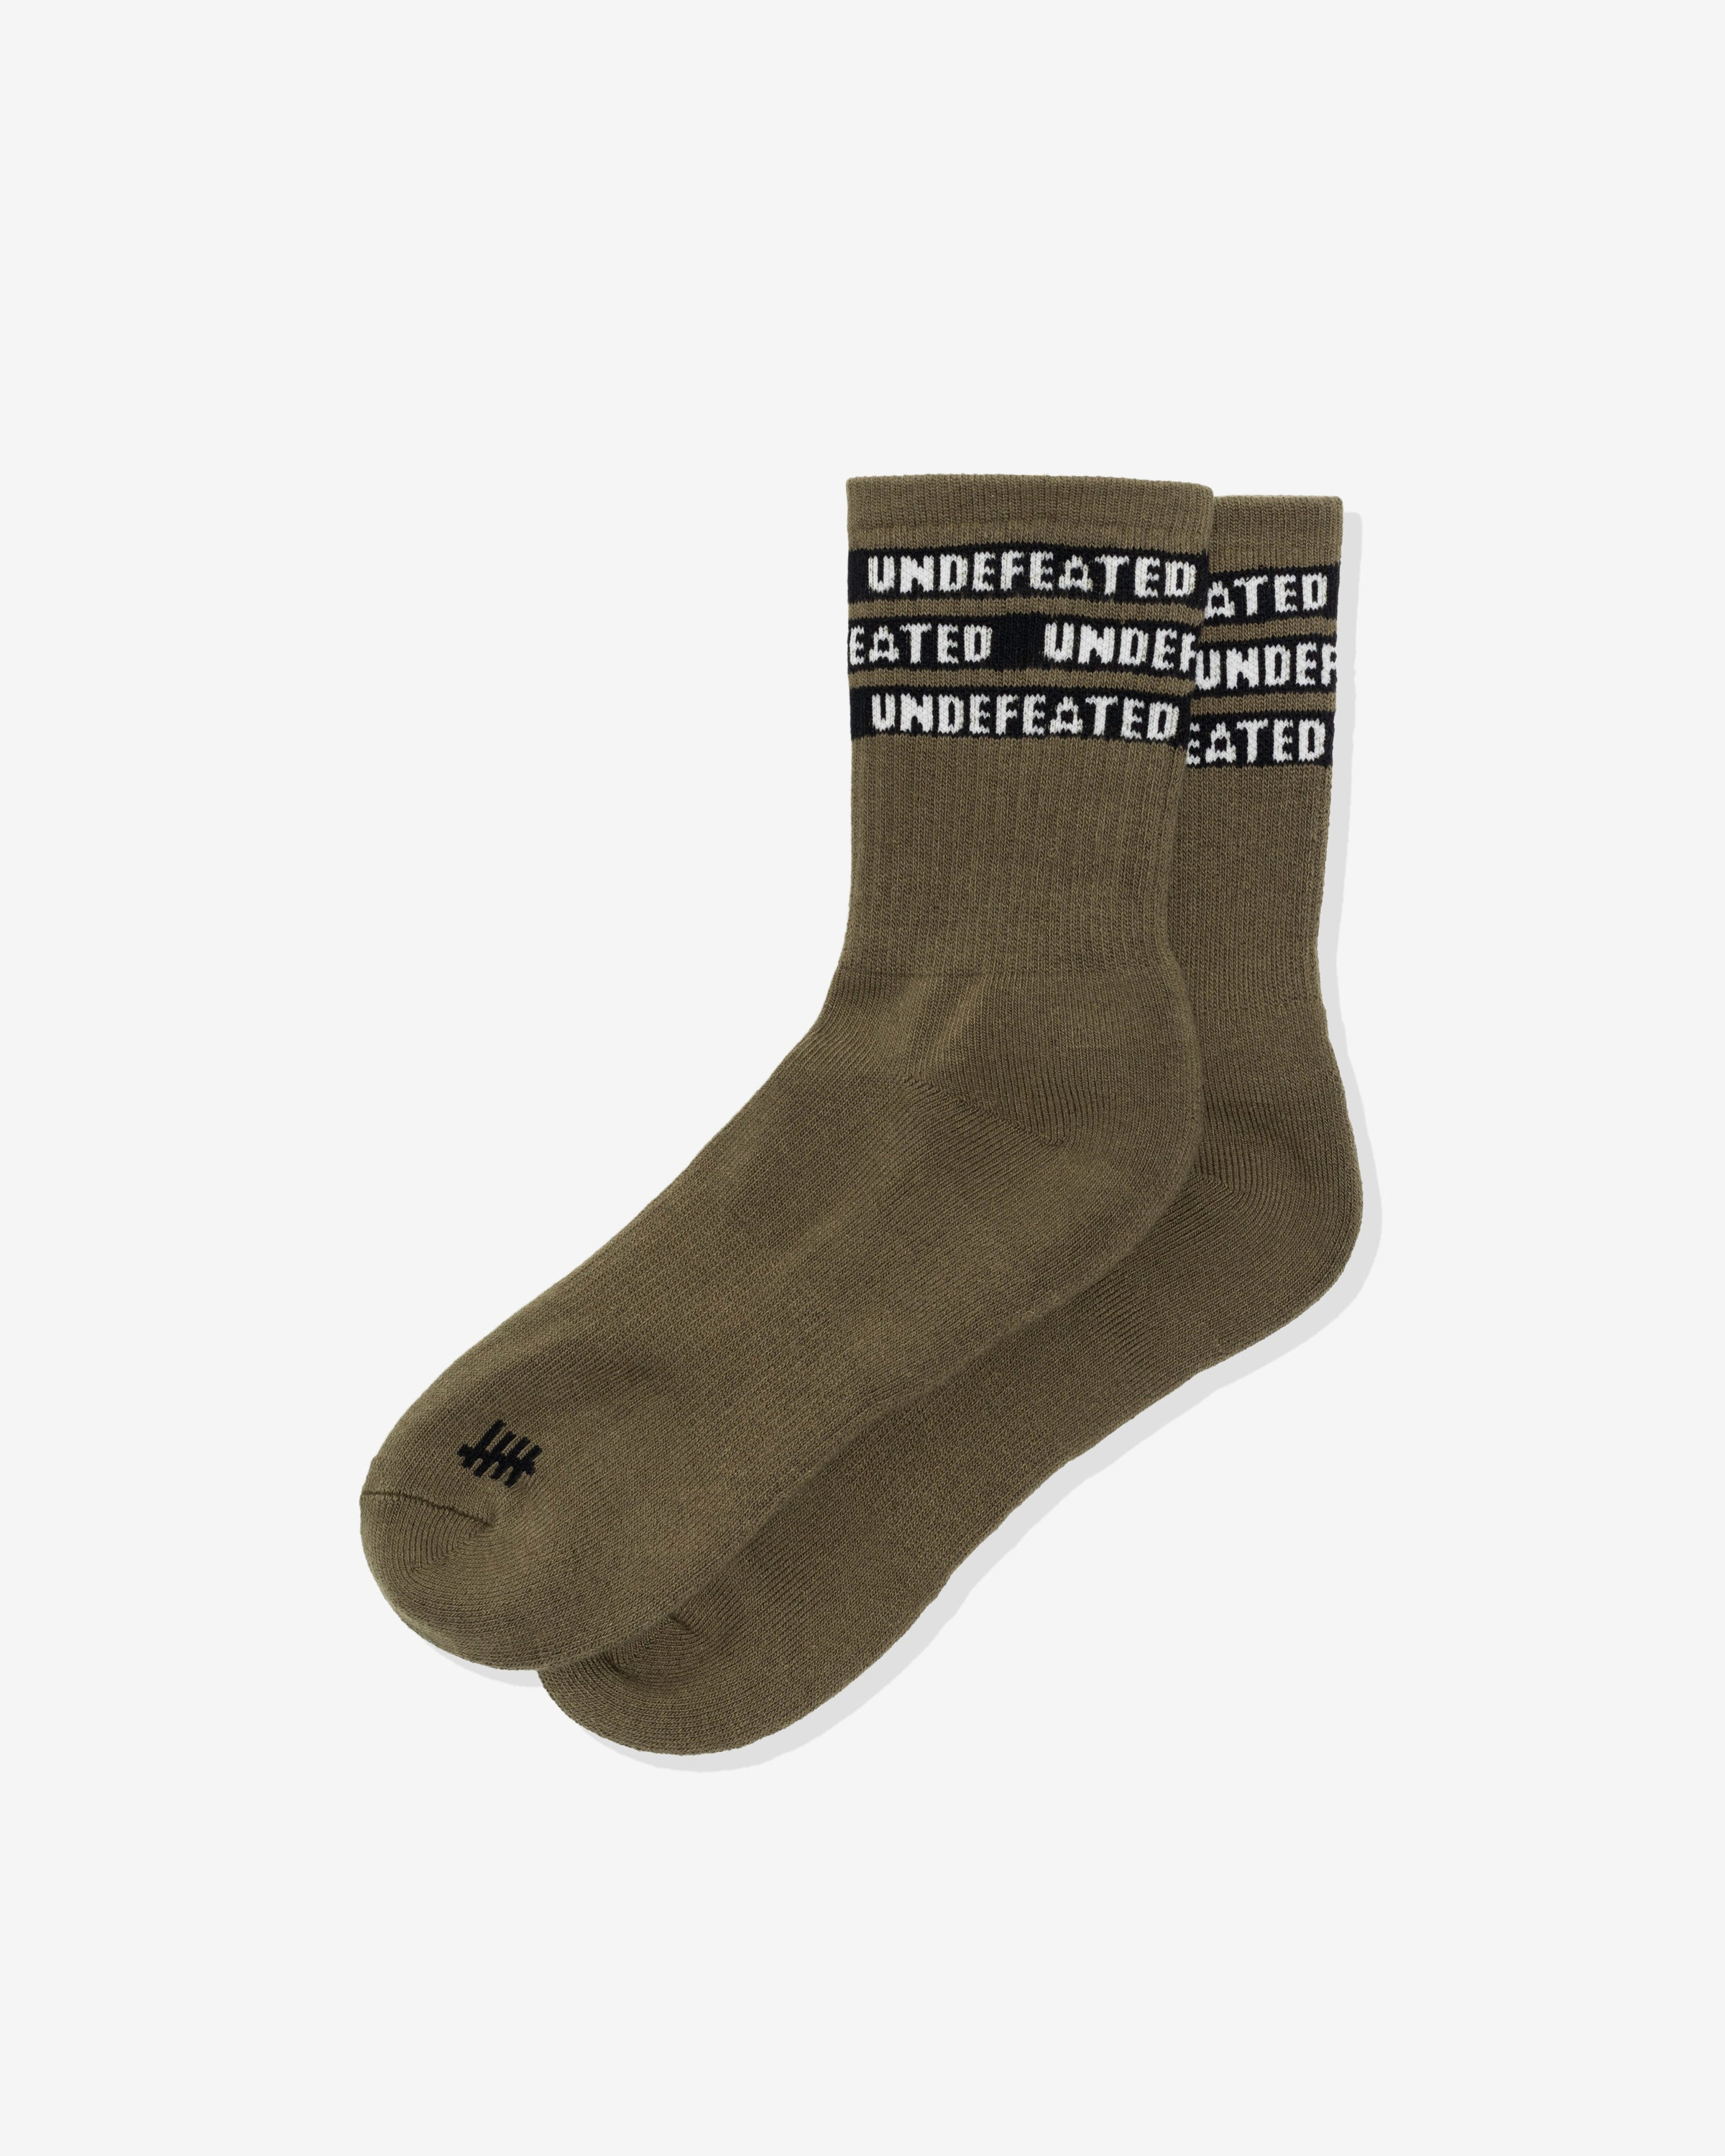 UNDEFEATED CREW SOCK - MILITIAGREEN/ BLACK